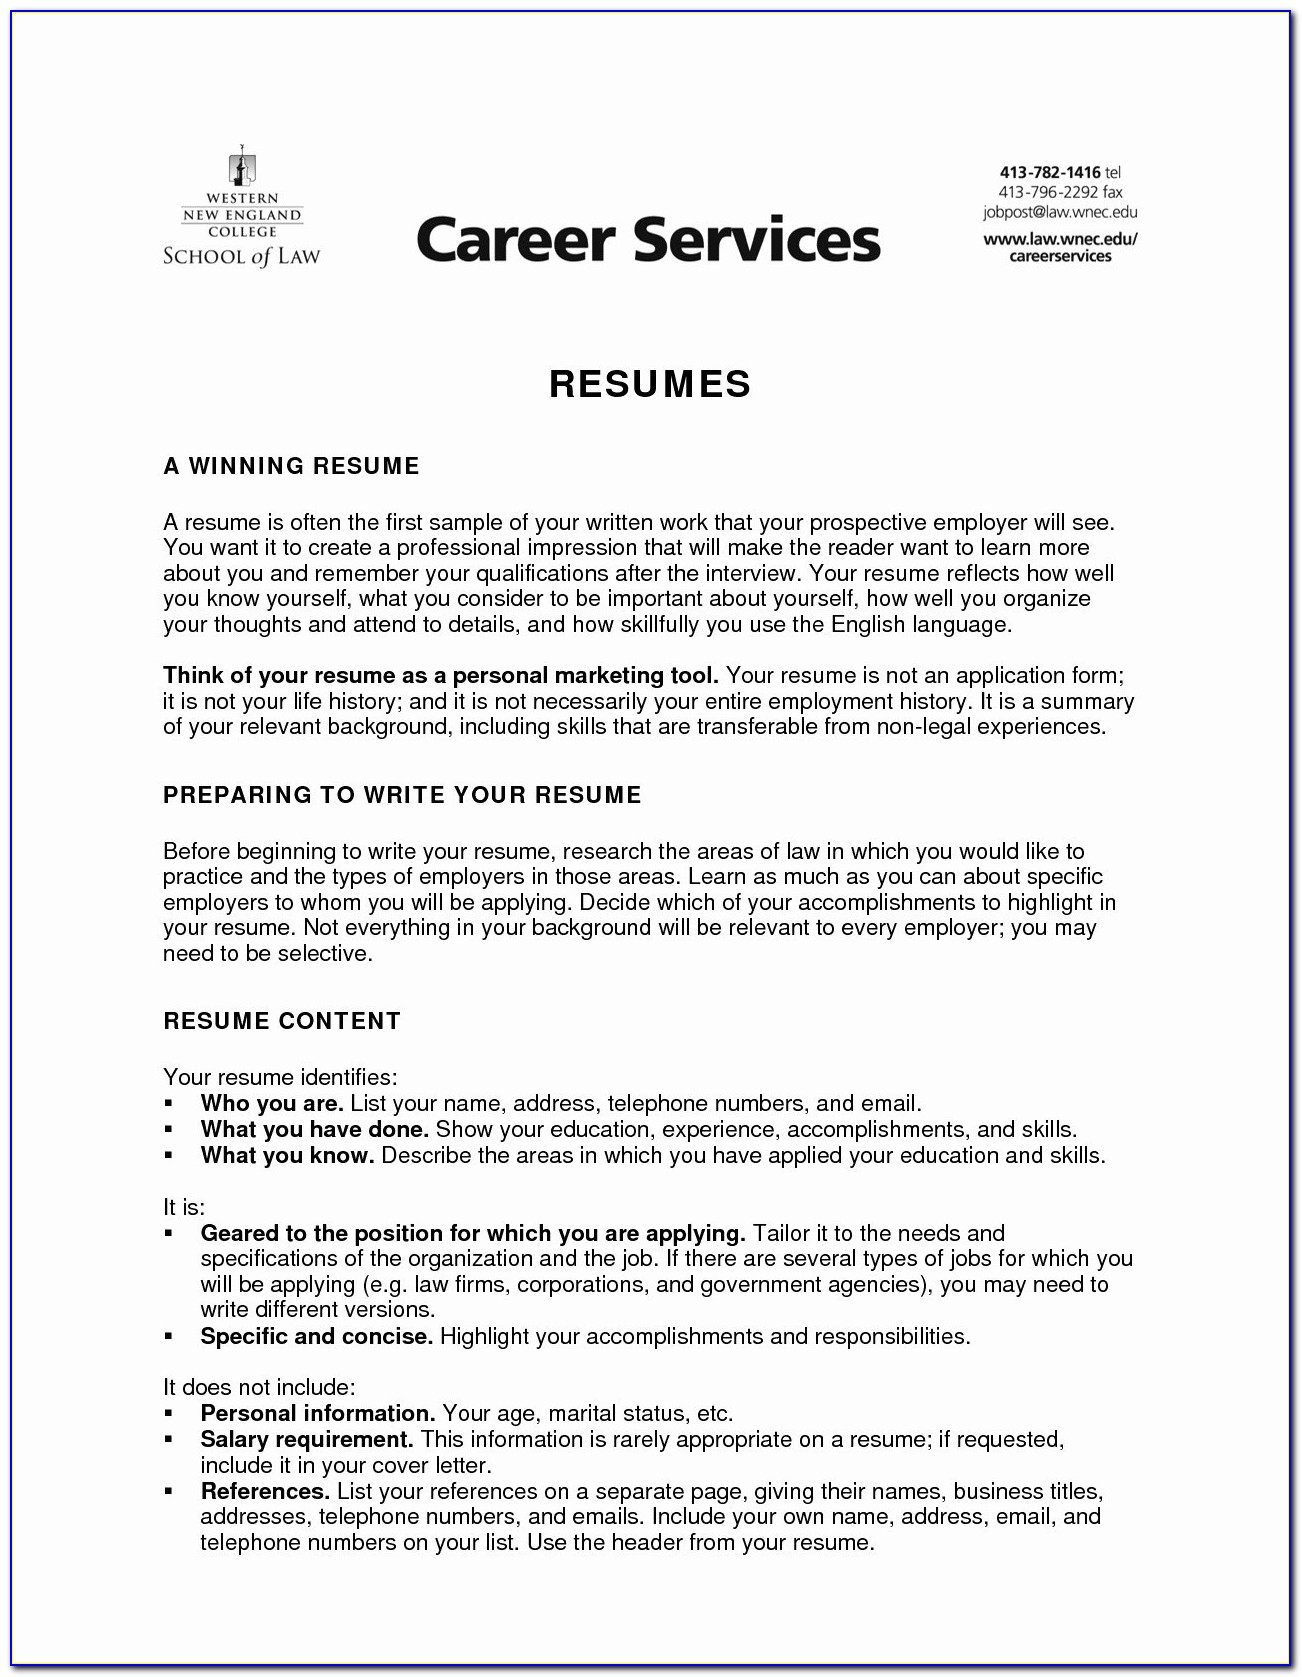 Resume Writer Needed Inspirational Resume Writer Jobs Luxury Beautiful Resumate Unique Academic Writers